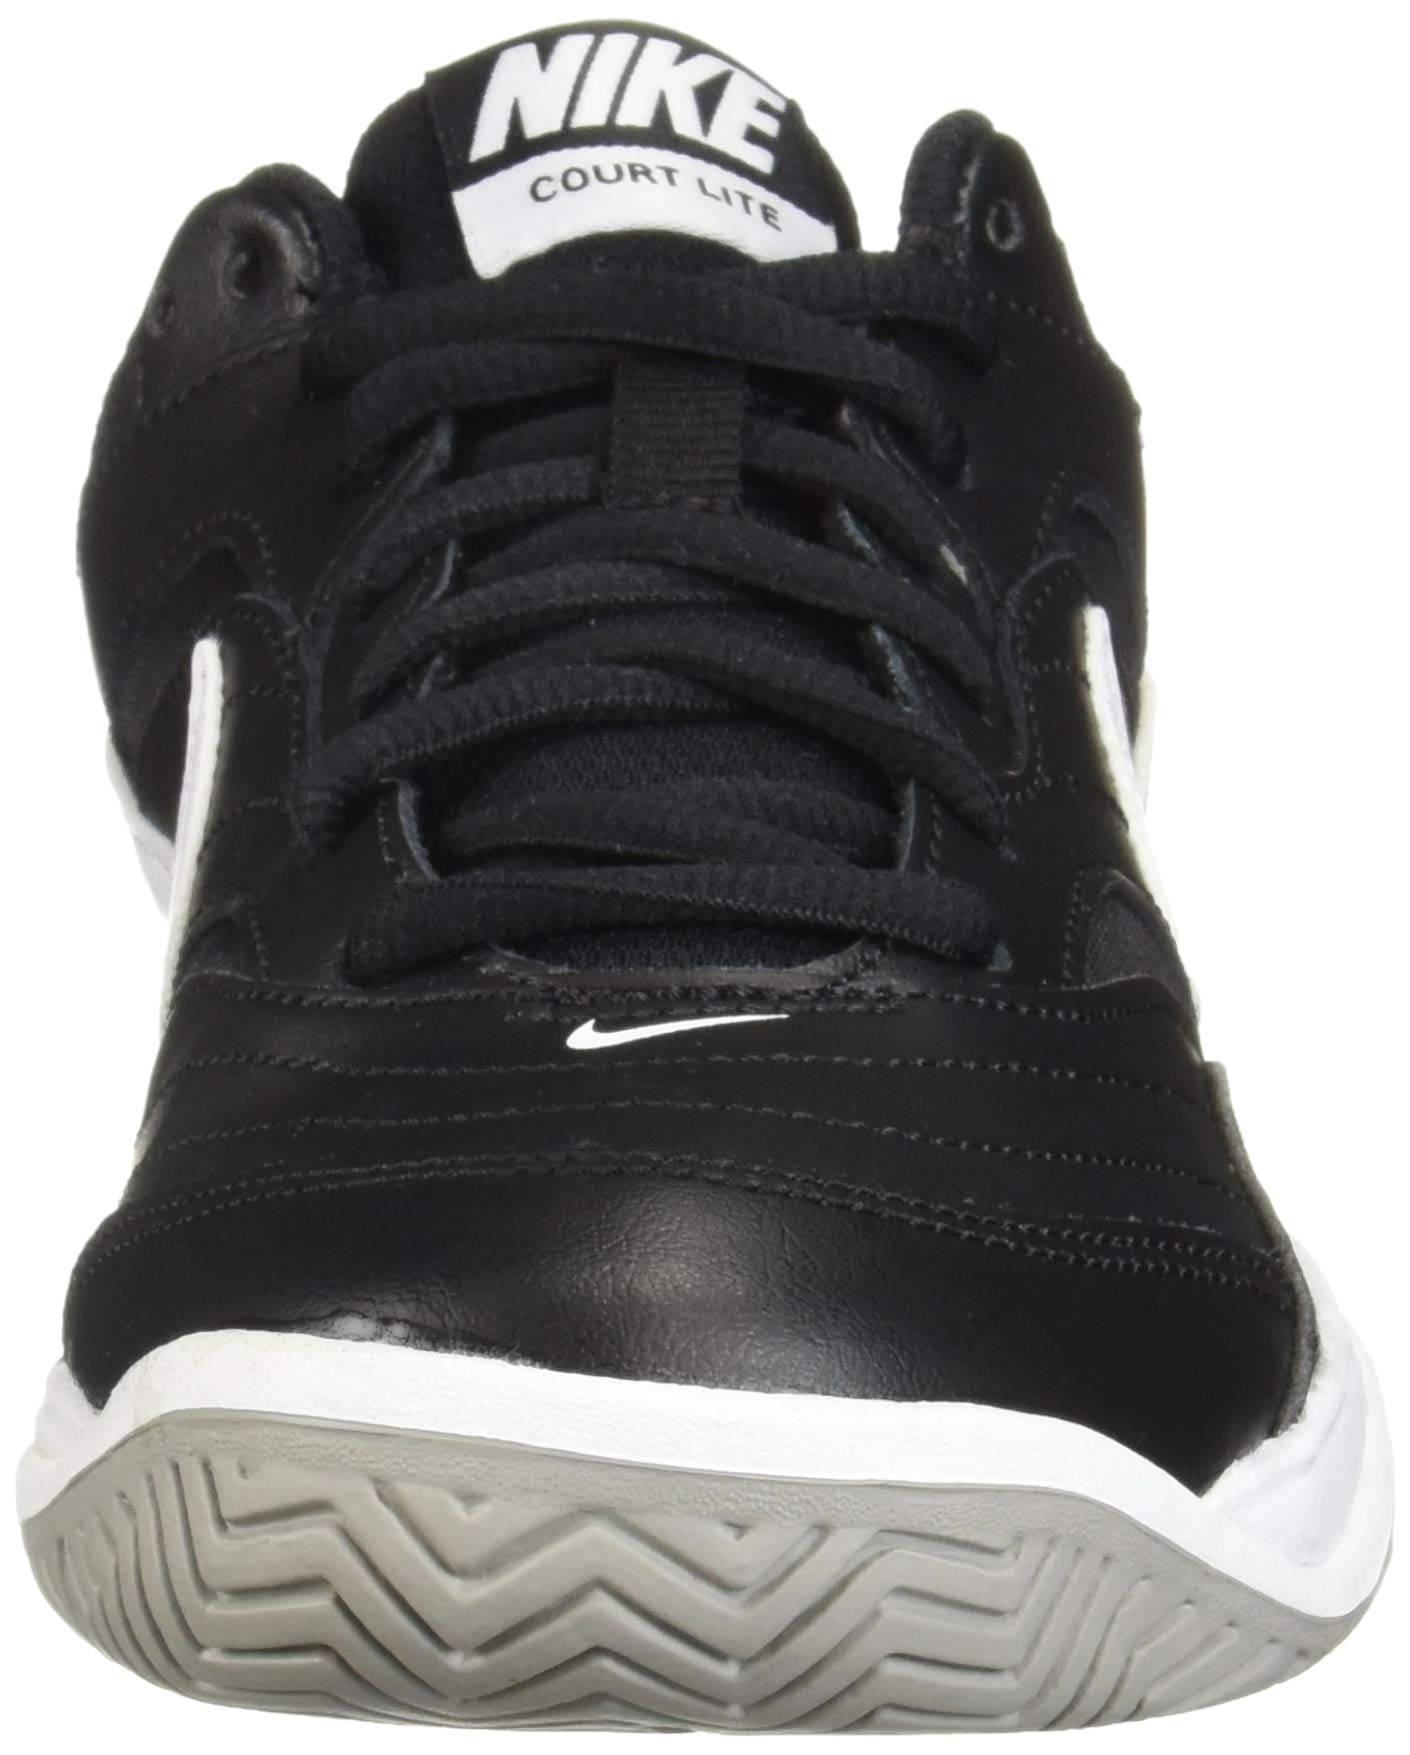 NIKE Men's Court Lite Athletic Shoe, Black/White/Medium Grey, 7.5 Regular US by Nike (Image #4)